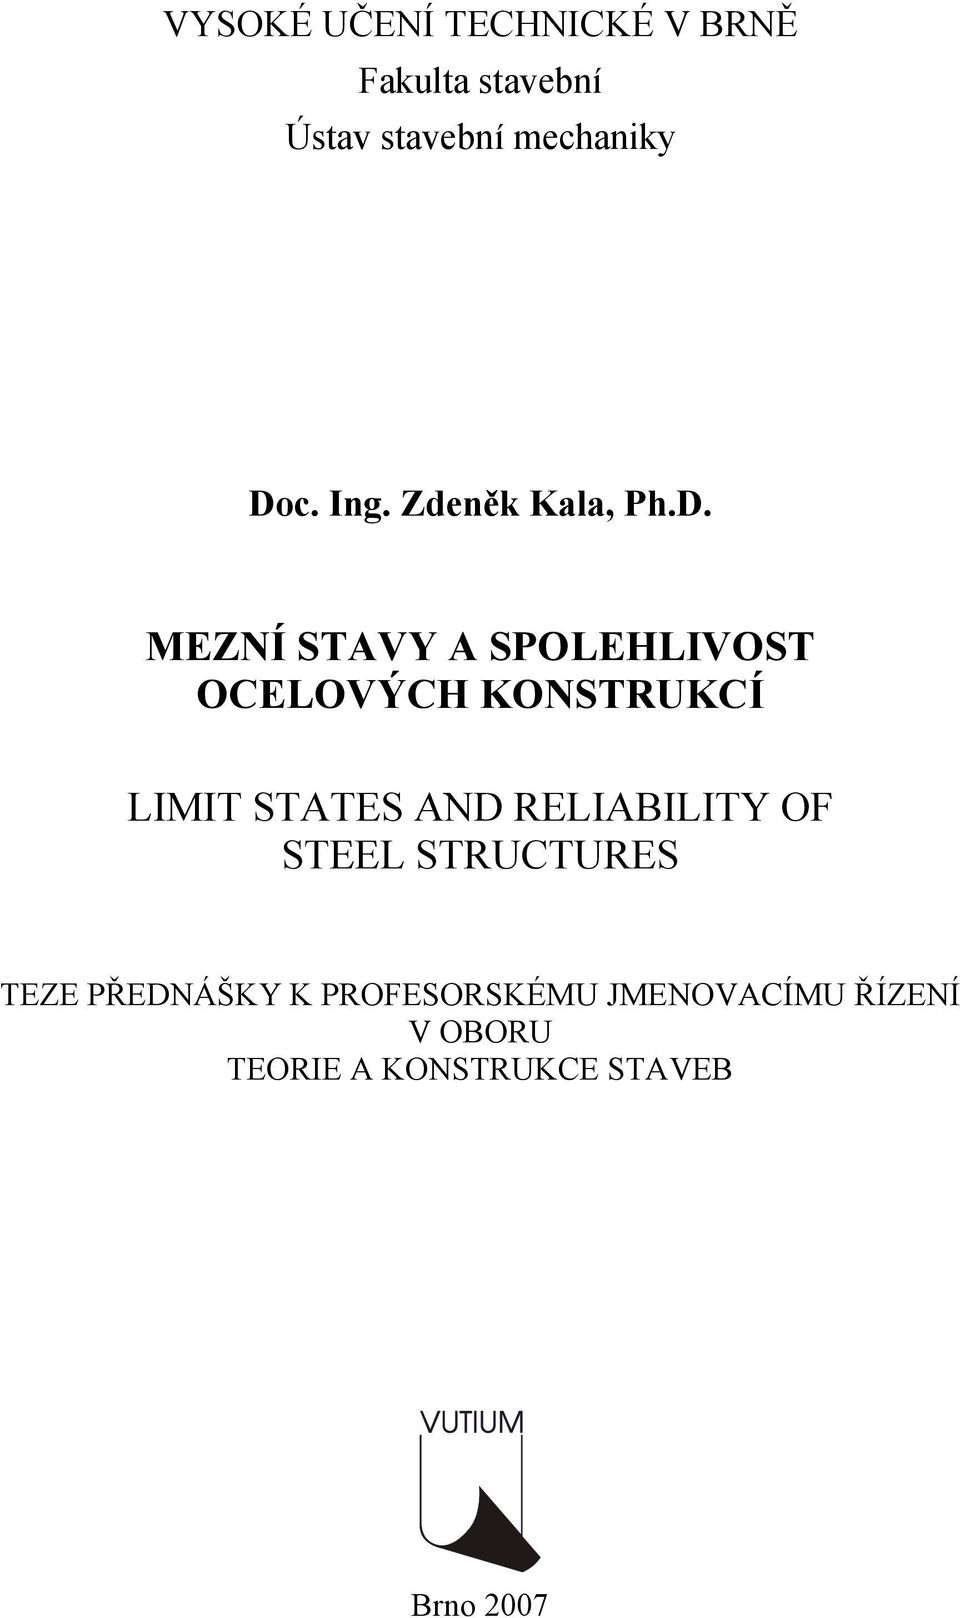 KONSTRUKCÍ LIMIT STATES AND RELIABILITY OF STEEL STRUCTURES TEZE